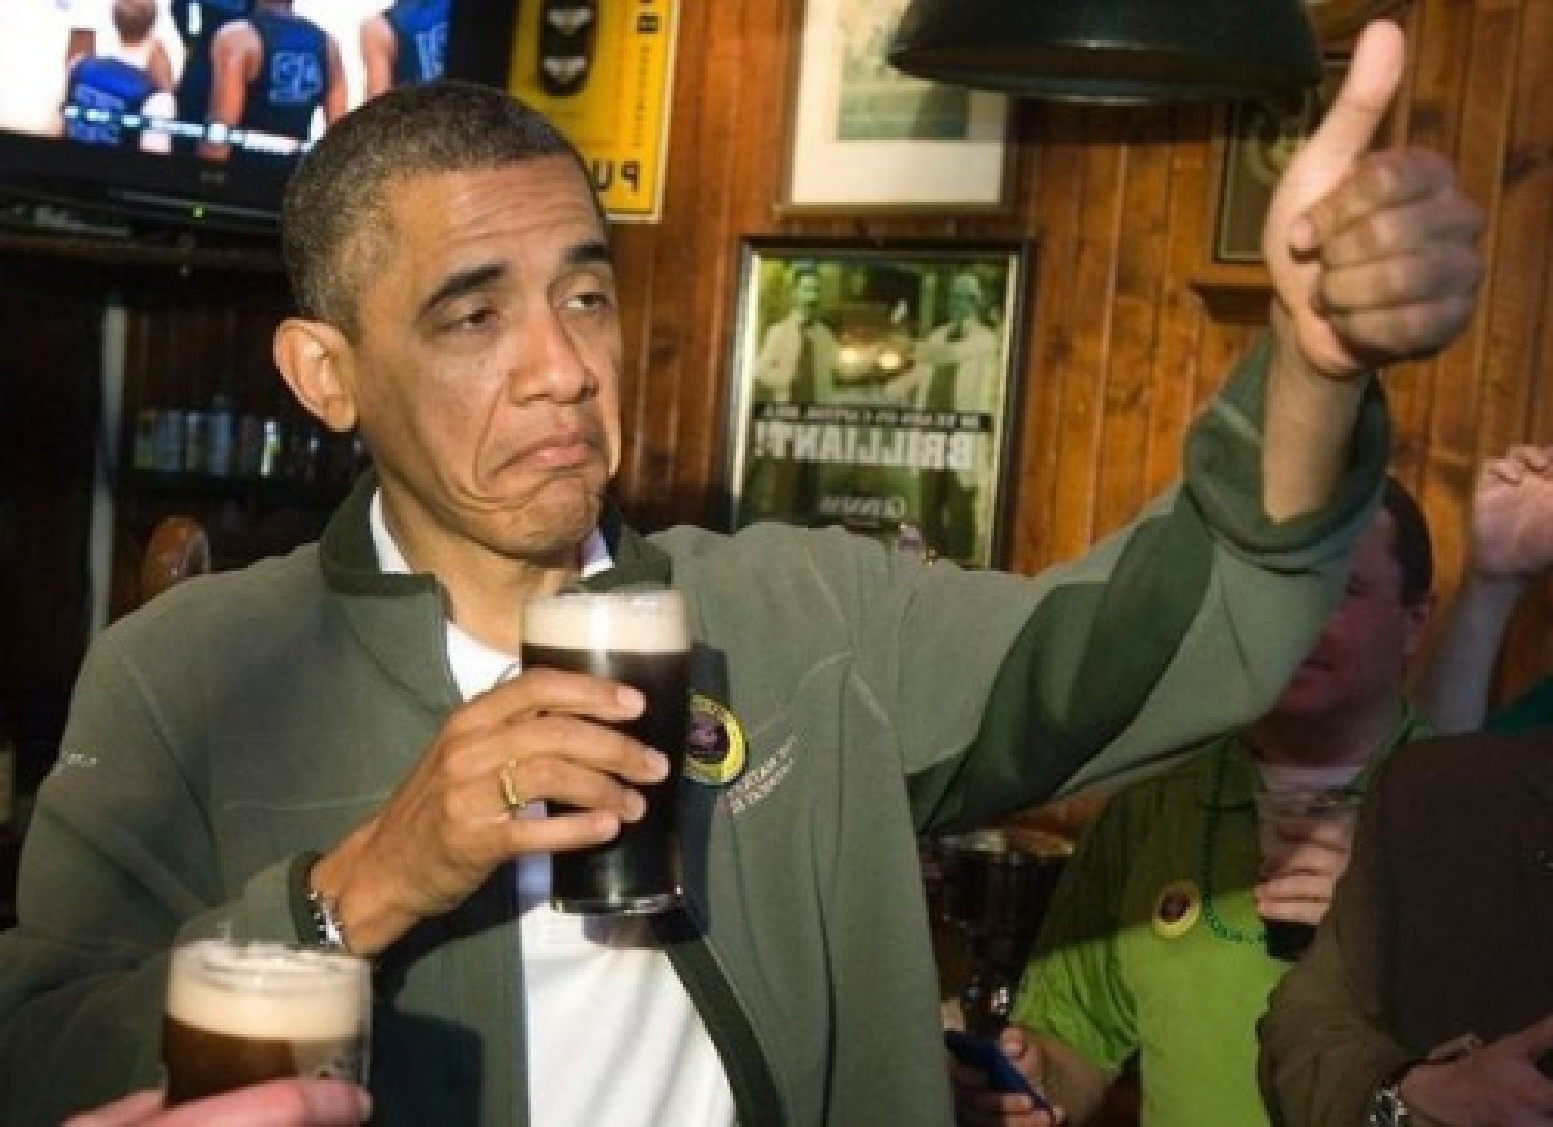 drunk-obama-thumbs-up1.jpg